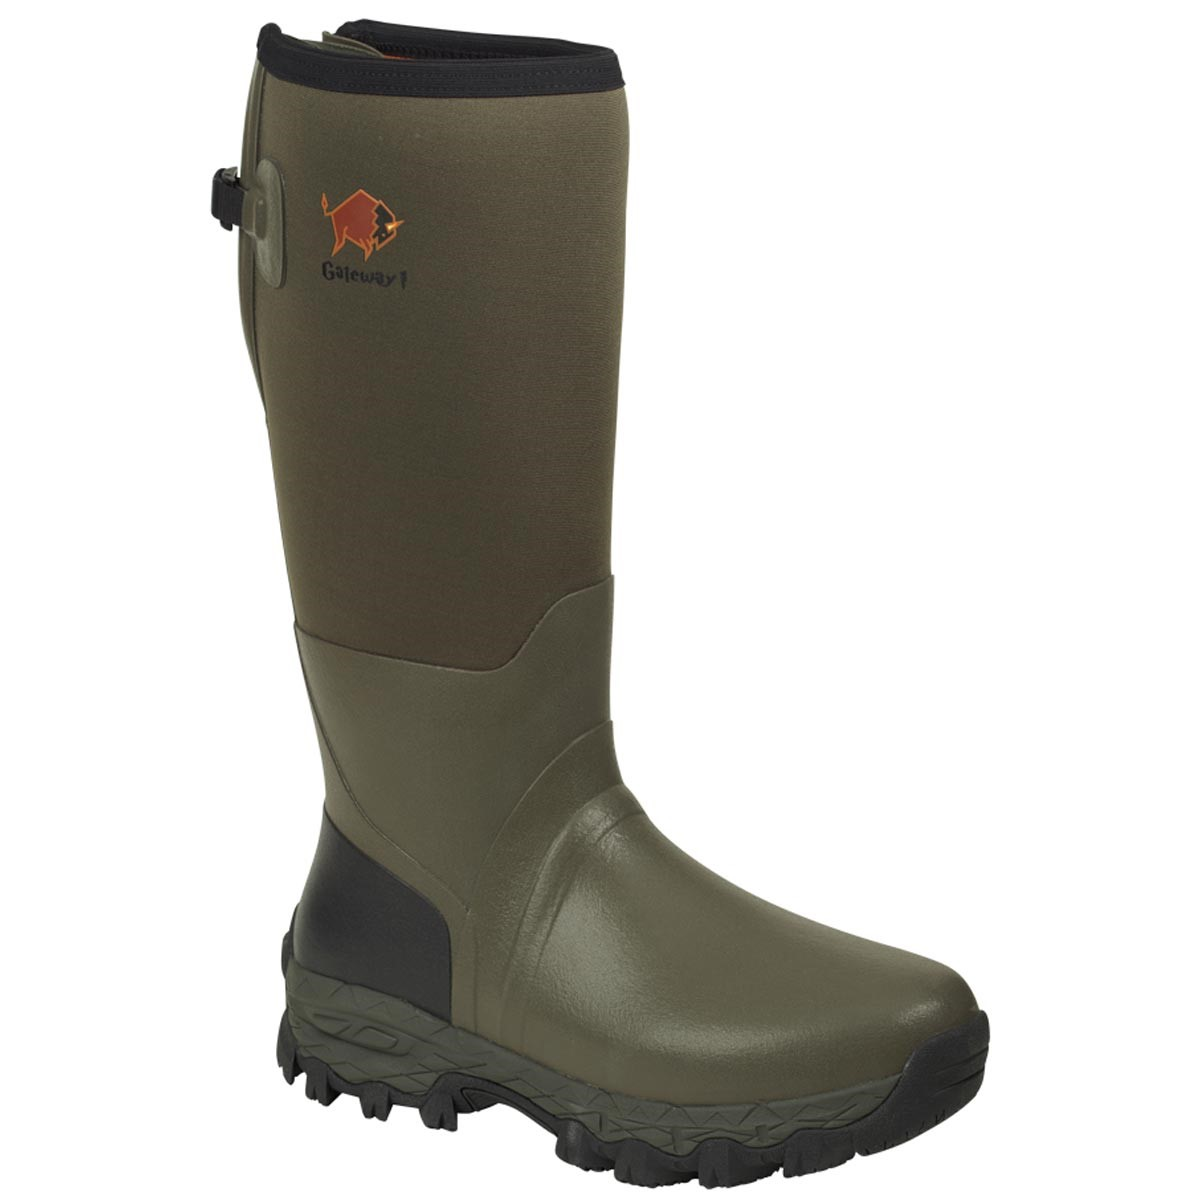 "Gateway Woodwalker 18"" 4mm Wellington Boot"